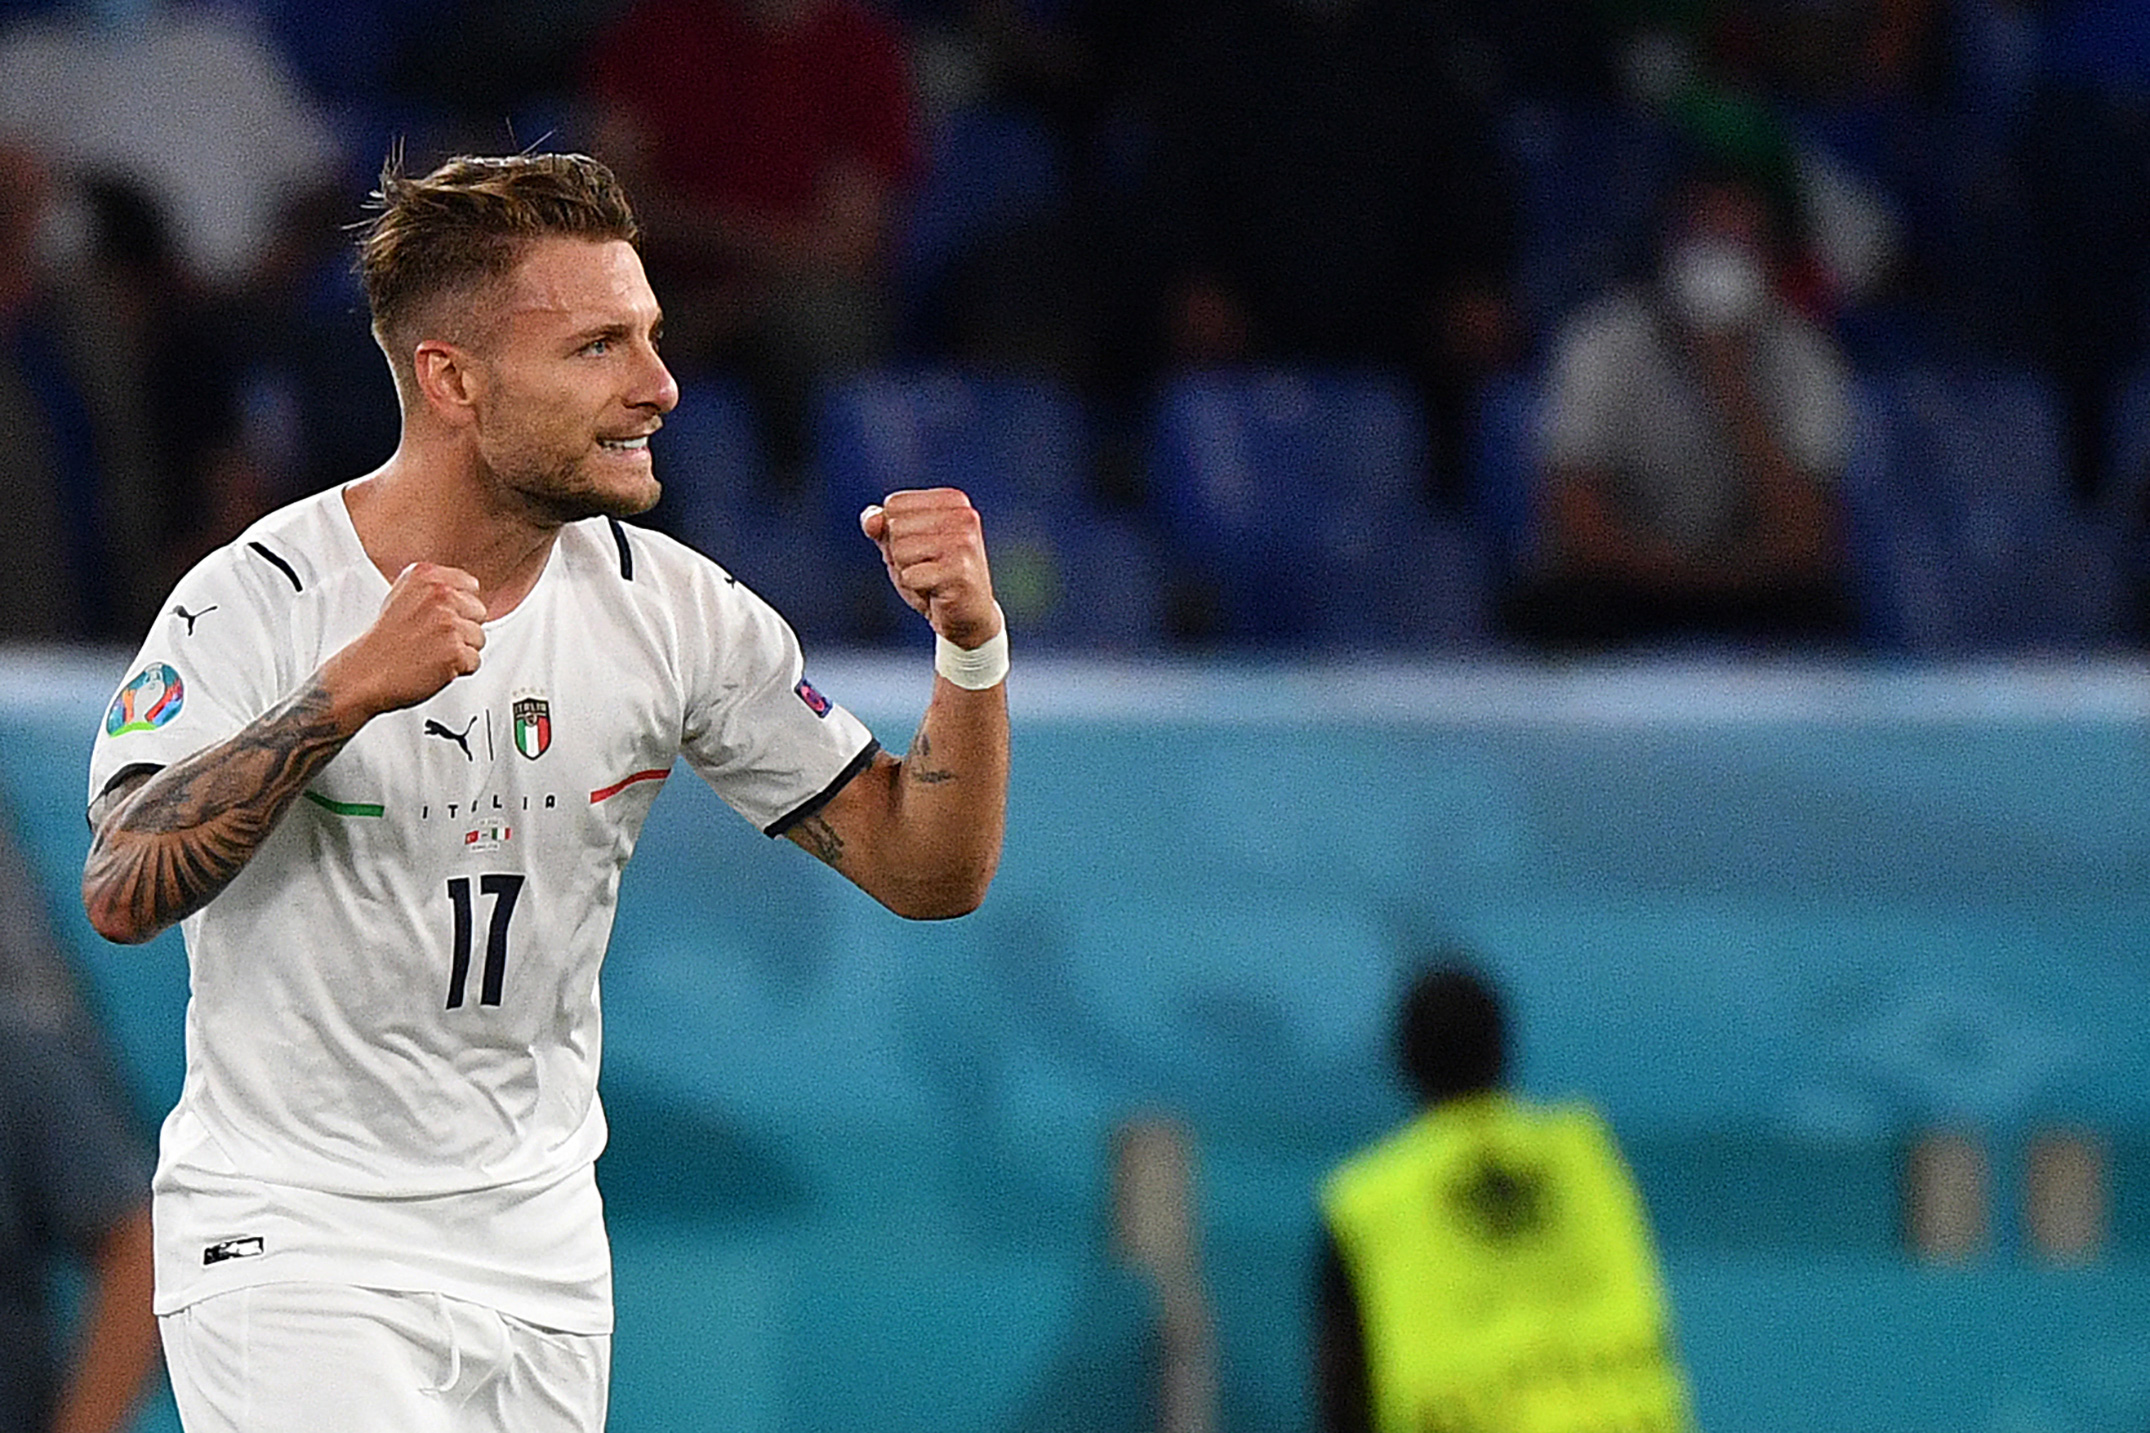 Italy cruises to victory with dominant performance against Turkey in Euro 2020 opener